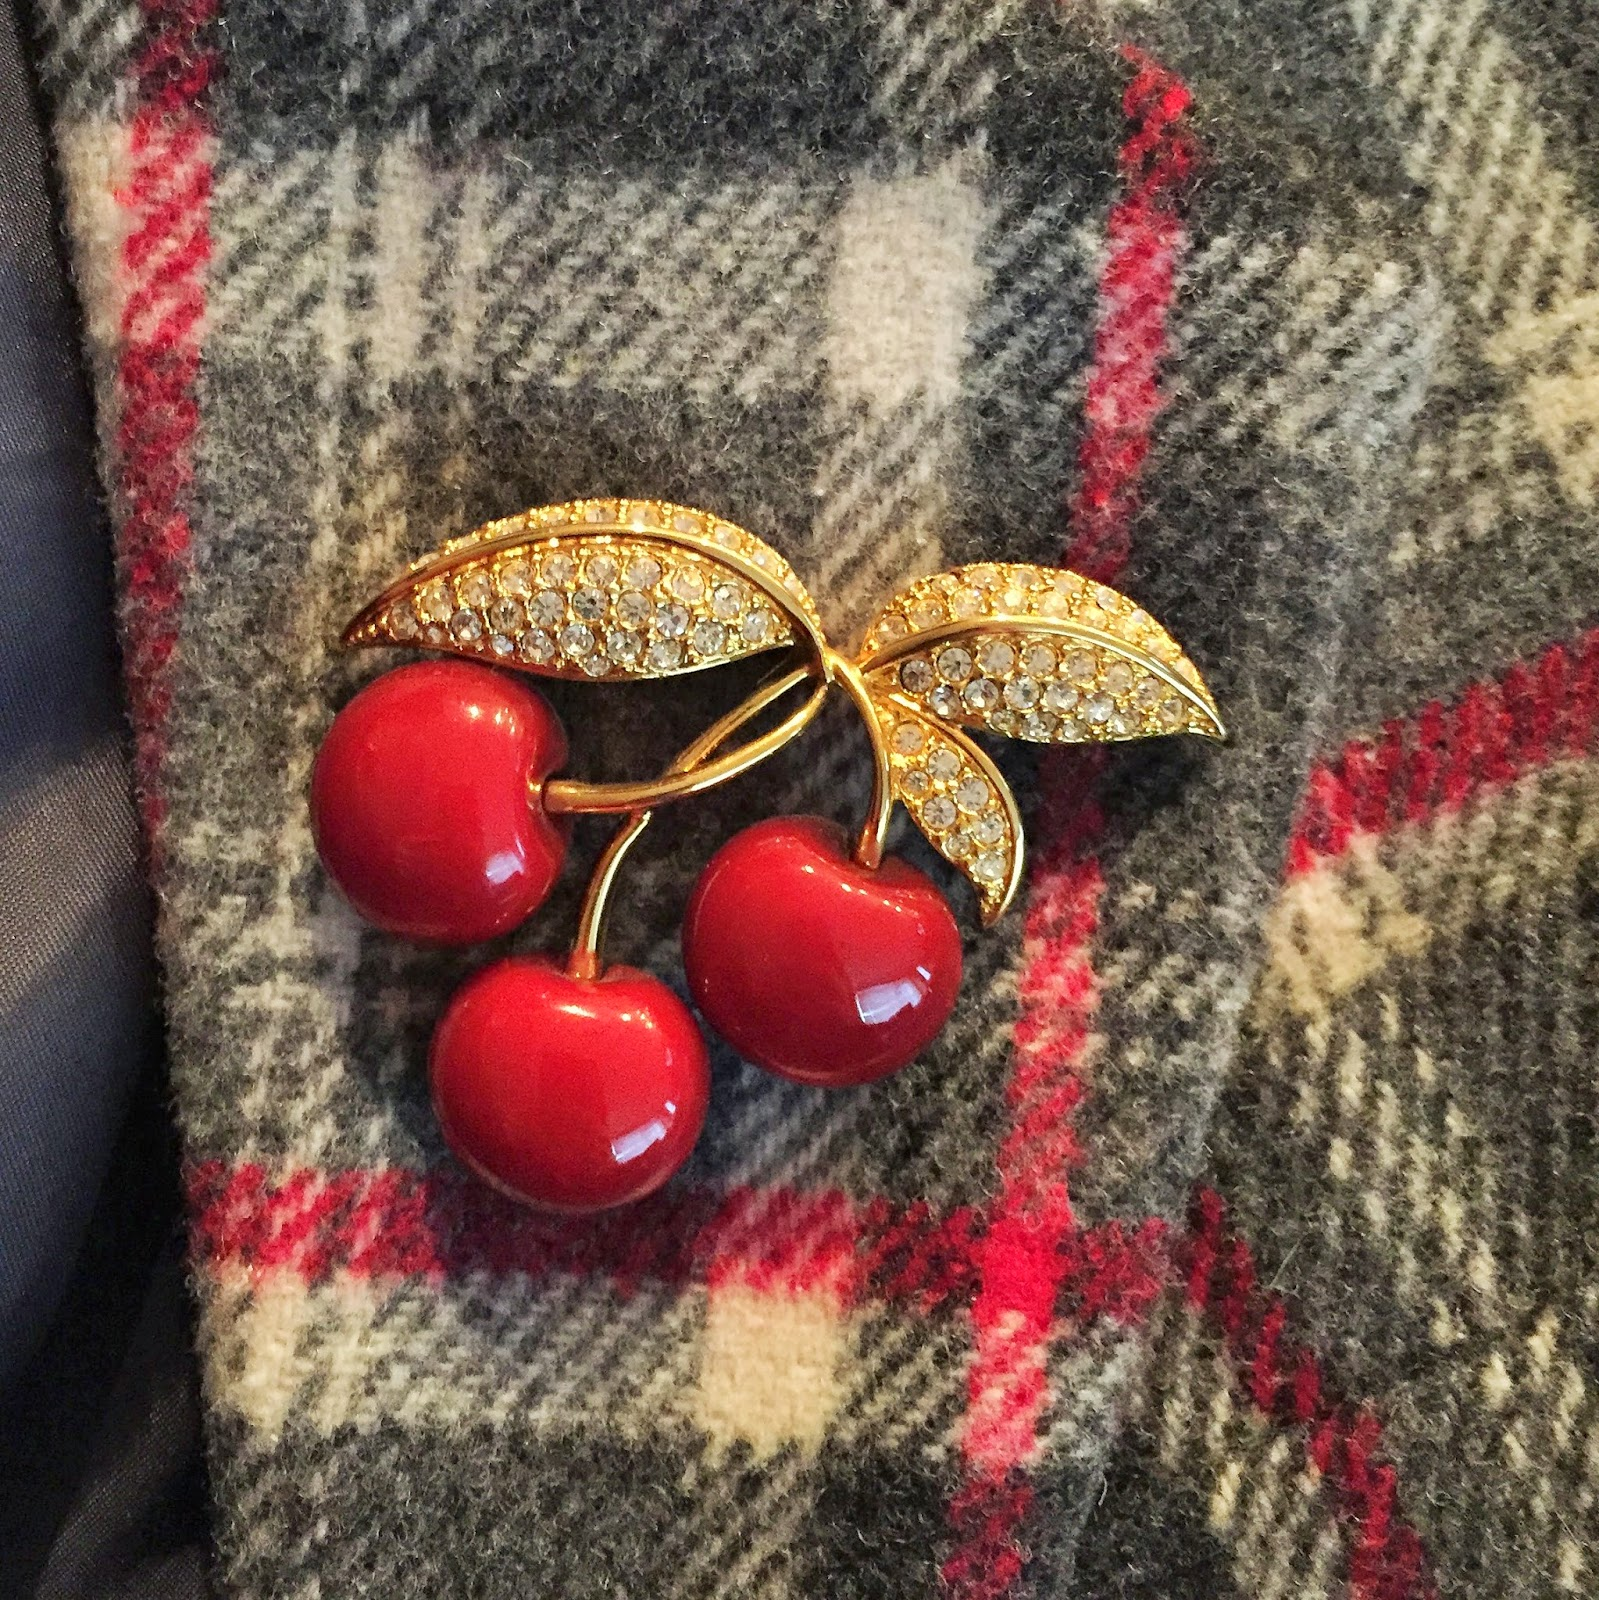 Cherry Brooch - She Knits in Pearls